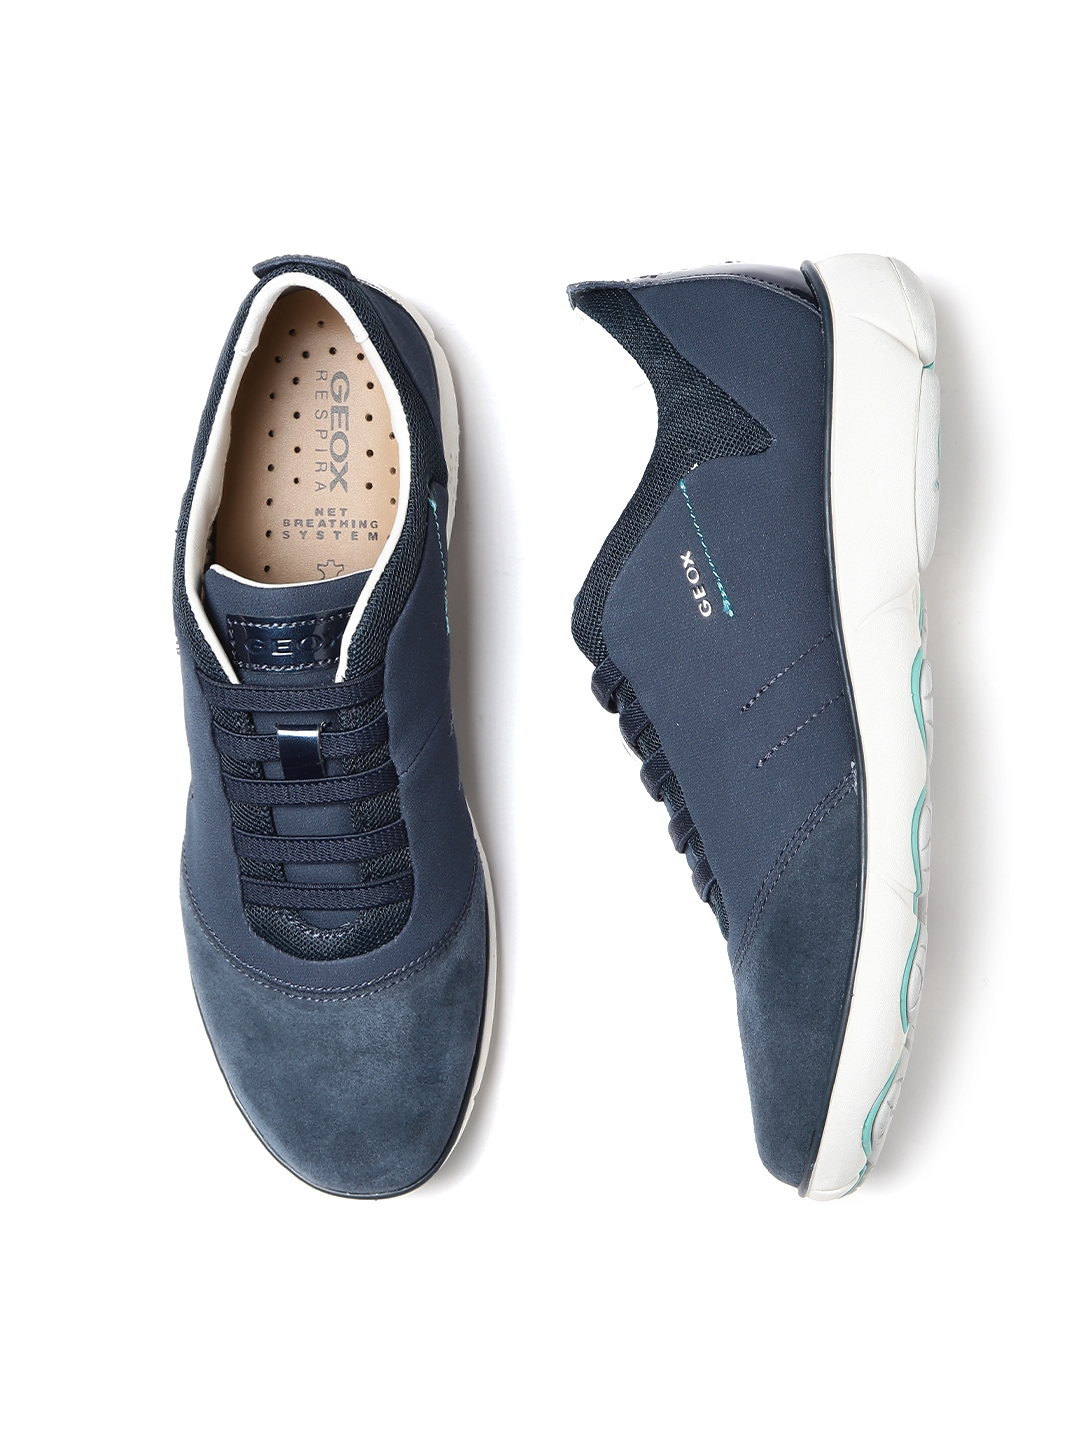 06034a2343 GEOX Nebula Respira Women Navy Breathable Italian Patent Leather Casual  Shoes